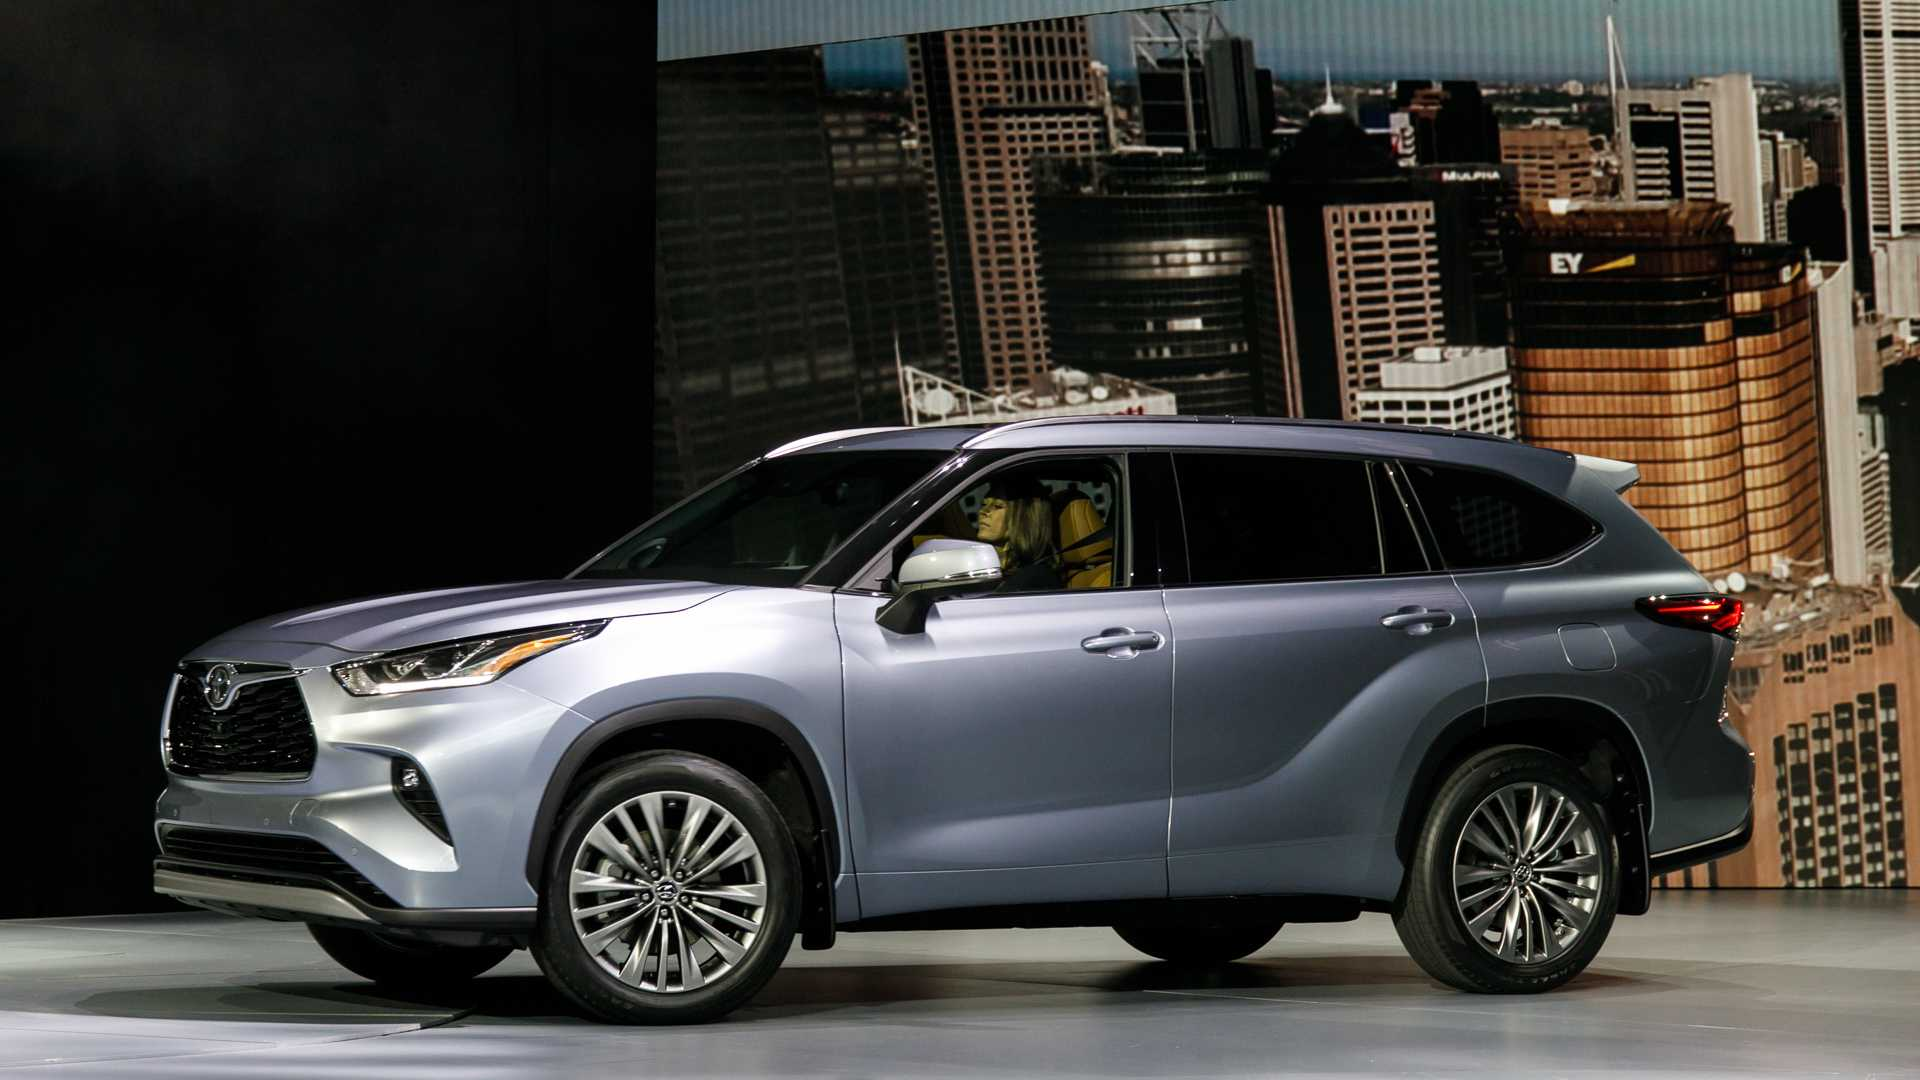 79 The Best Toyota Kluger 2020 Model Spy Shoot